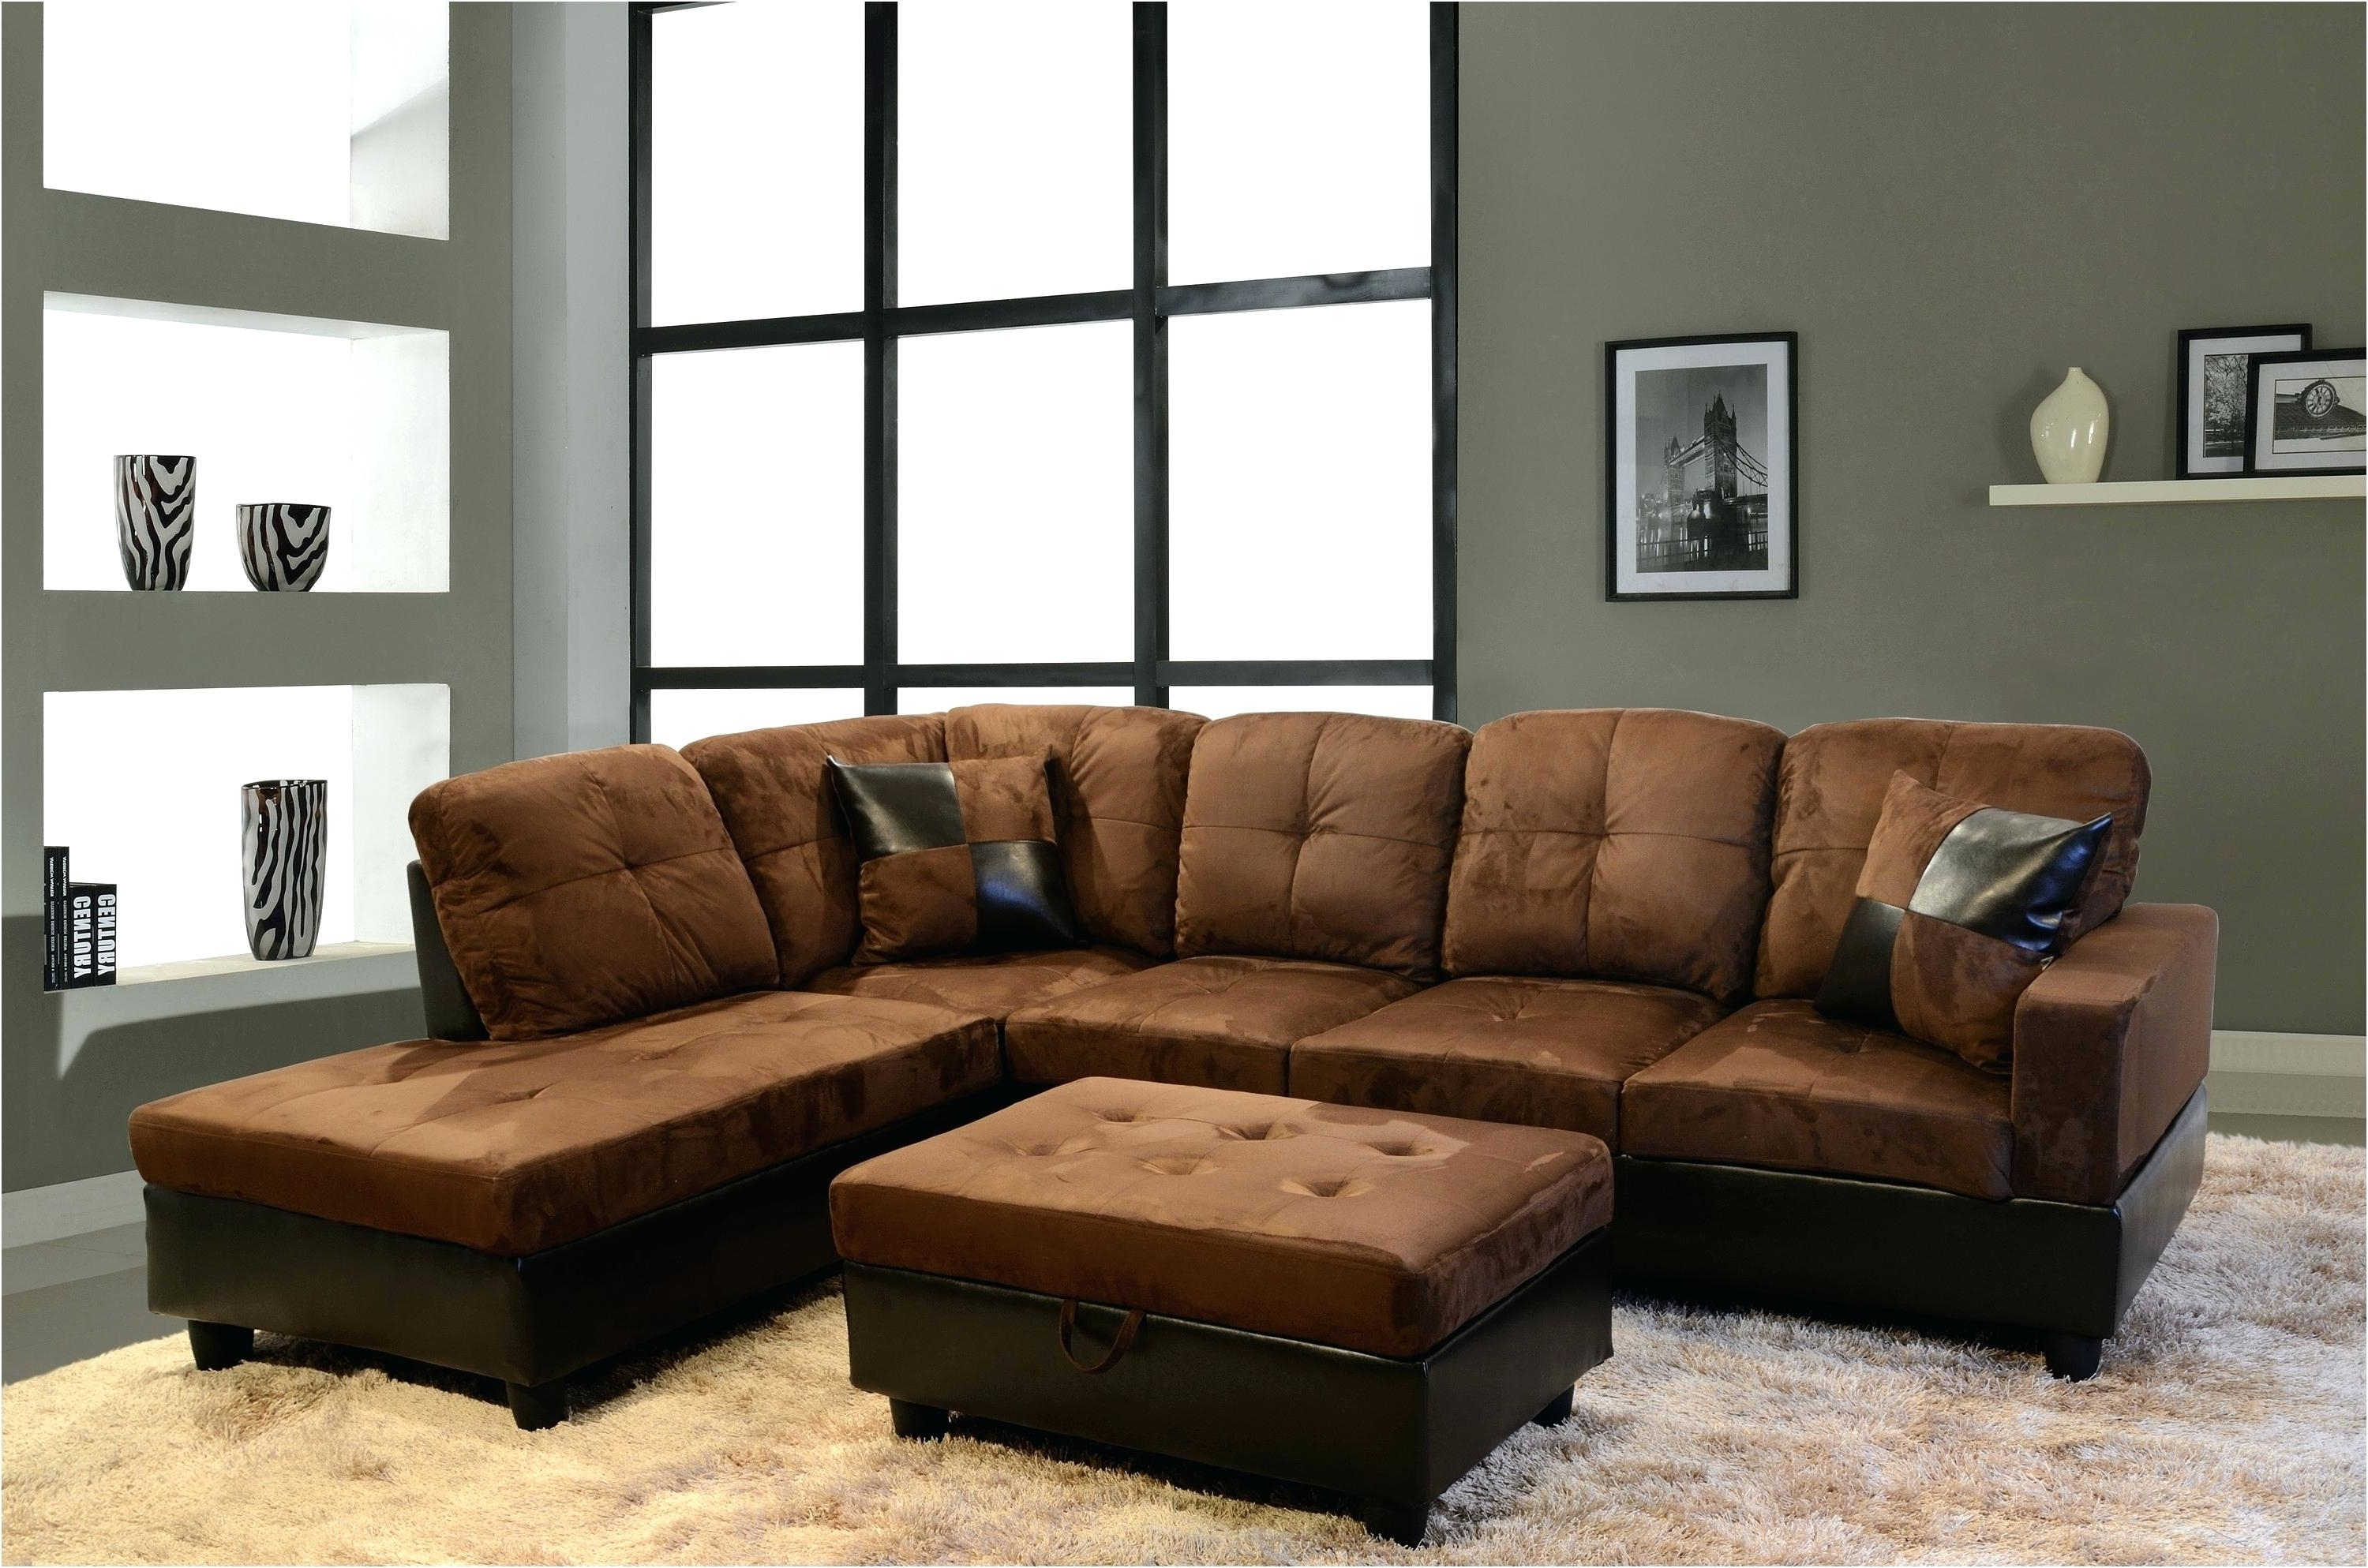 Sectionals For Cheap Sa Sas Sectional Sofas Under 500 Canada Sale For Favorite Canada Sale Sectional Sofas (View 13 of 15)